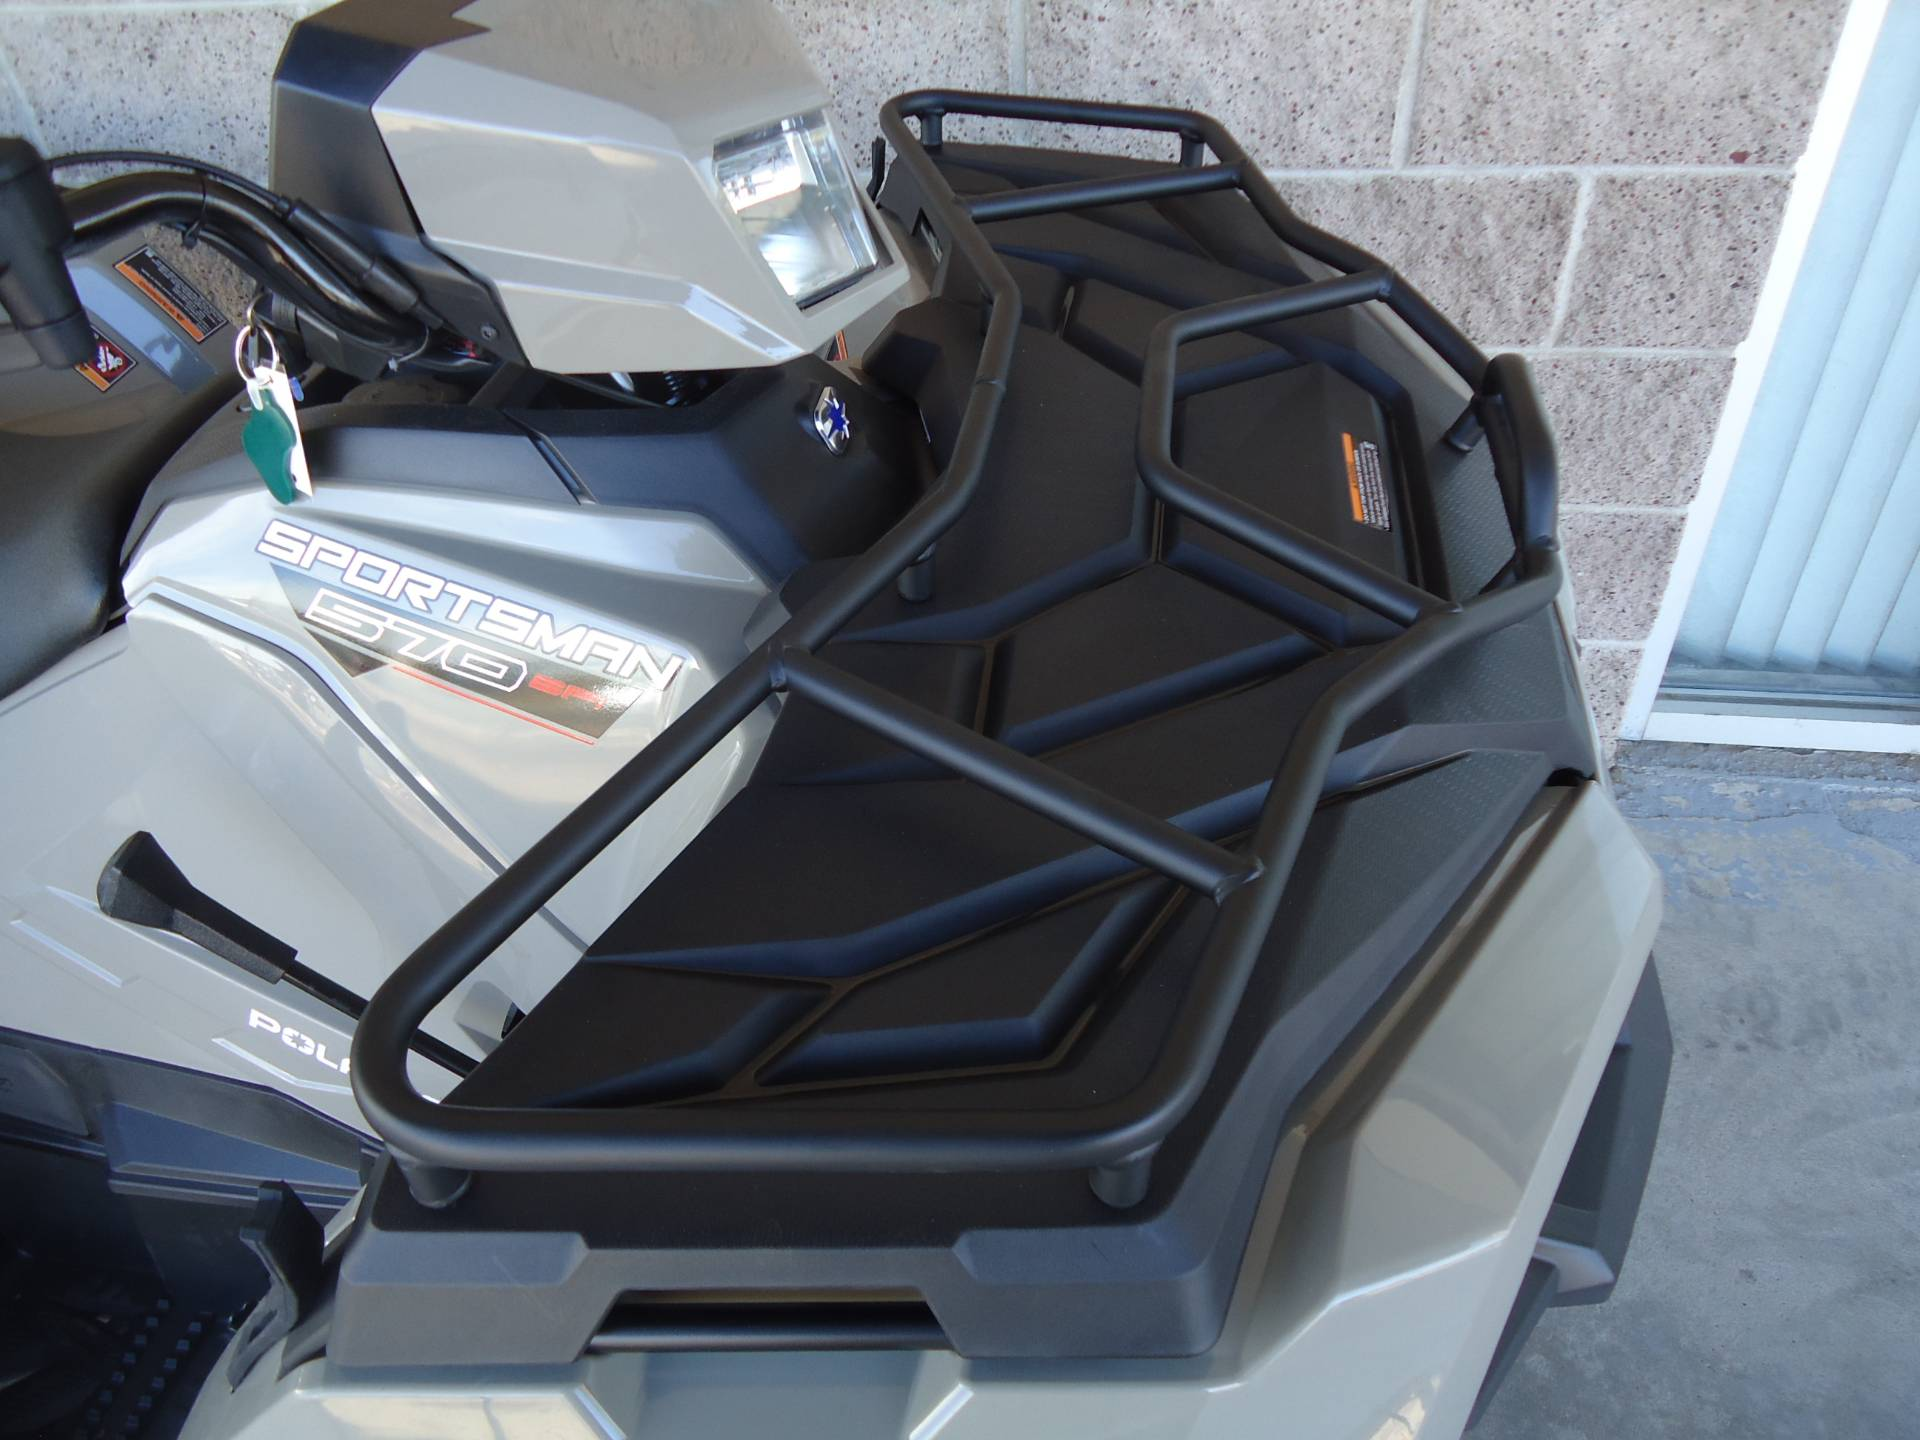 2021 Polaris Sportsman 570 in Denver, Colorado - Photo 4